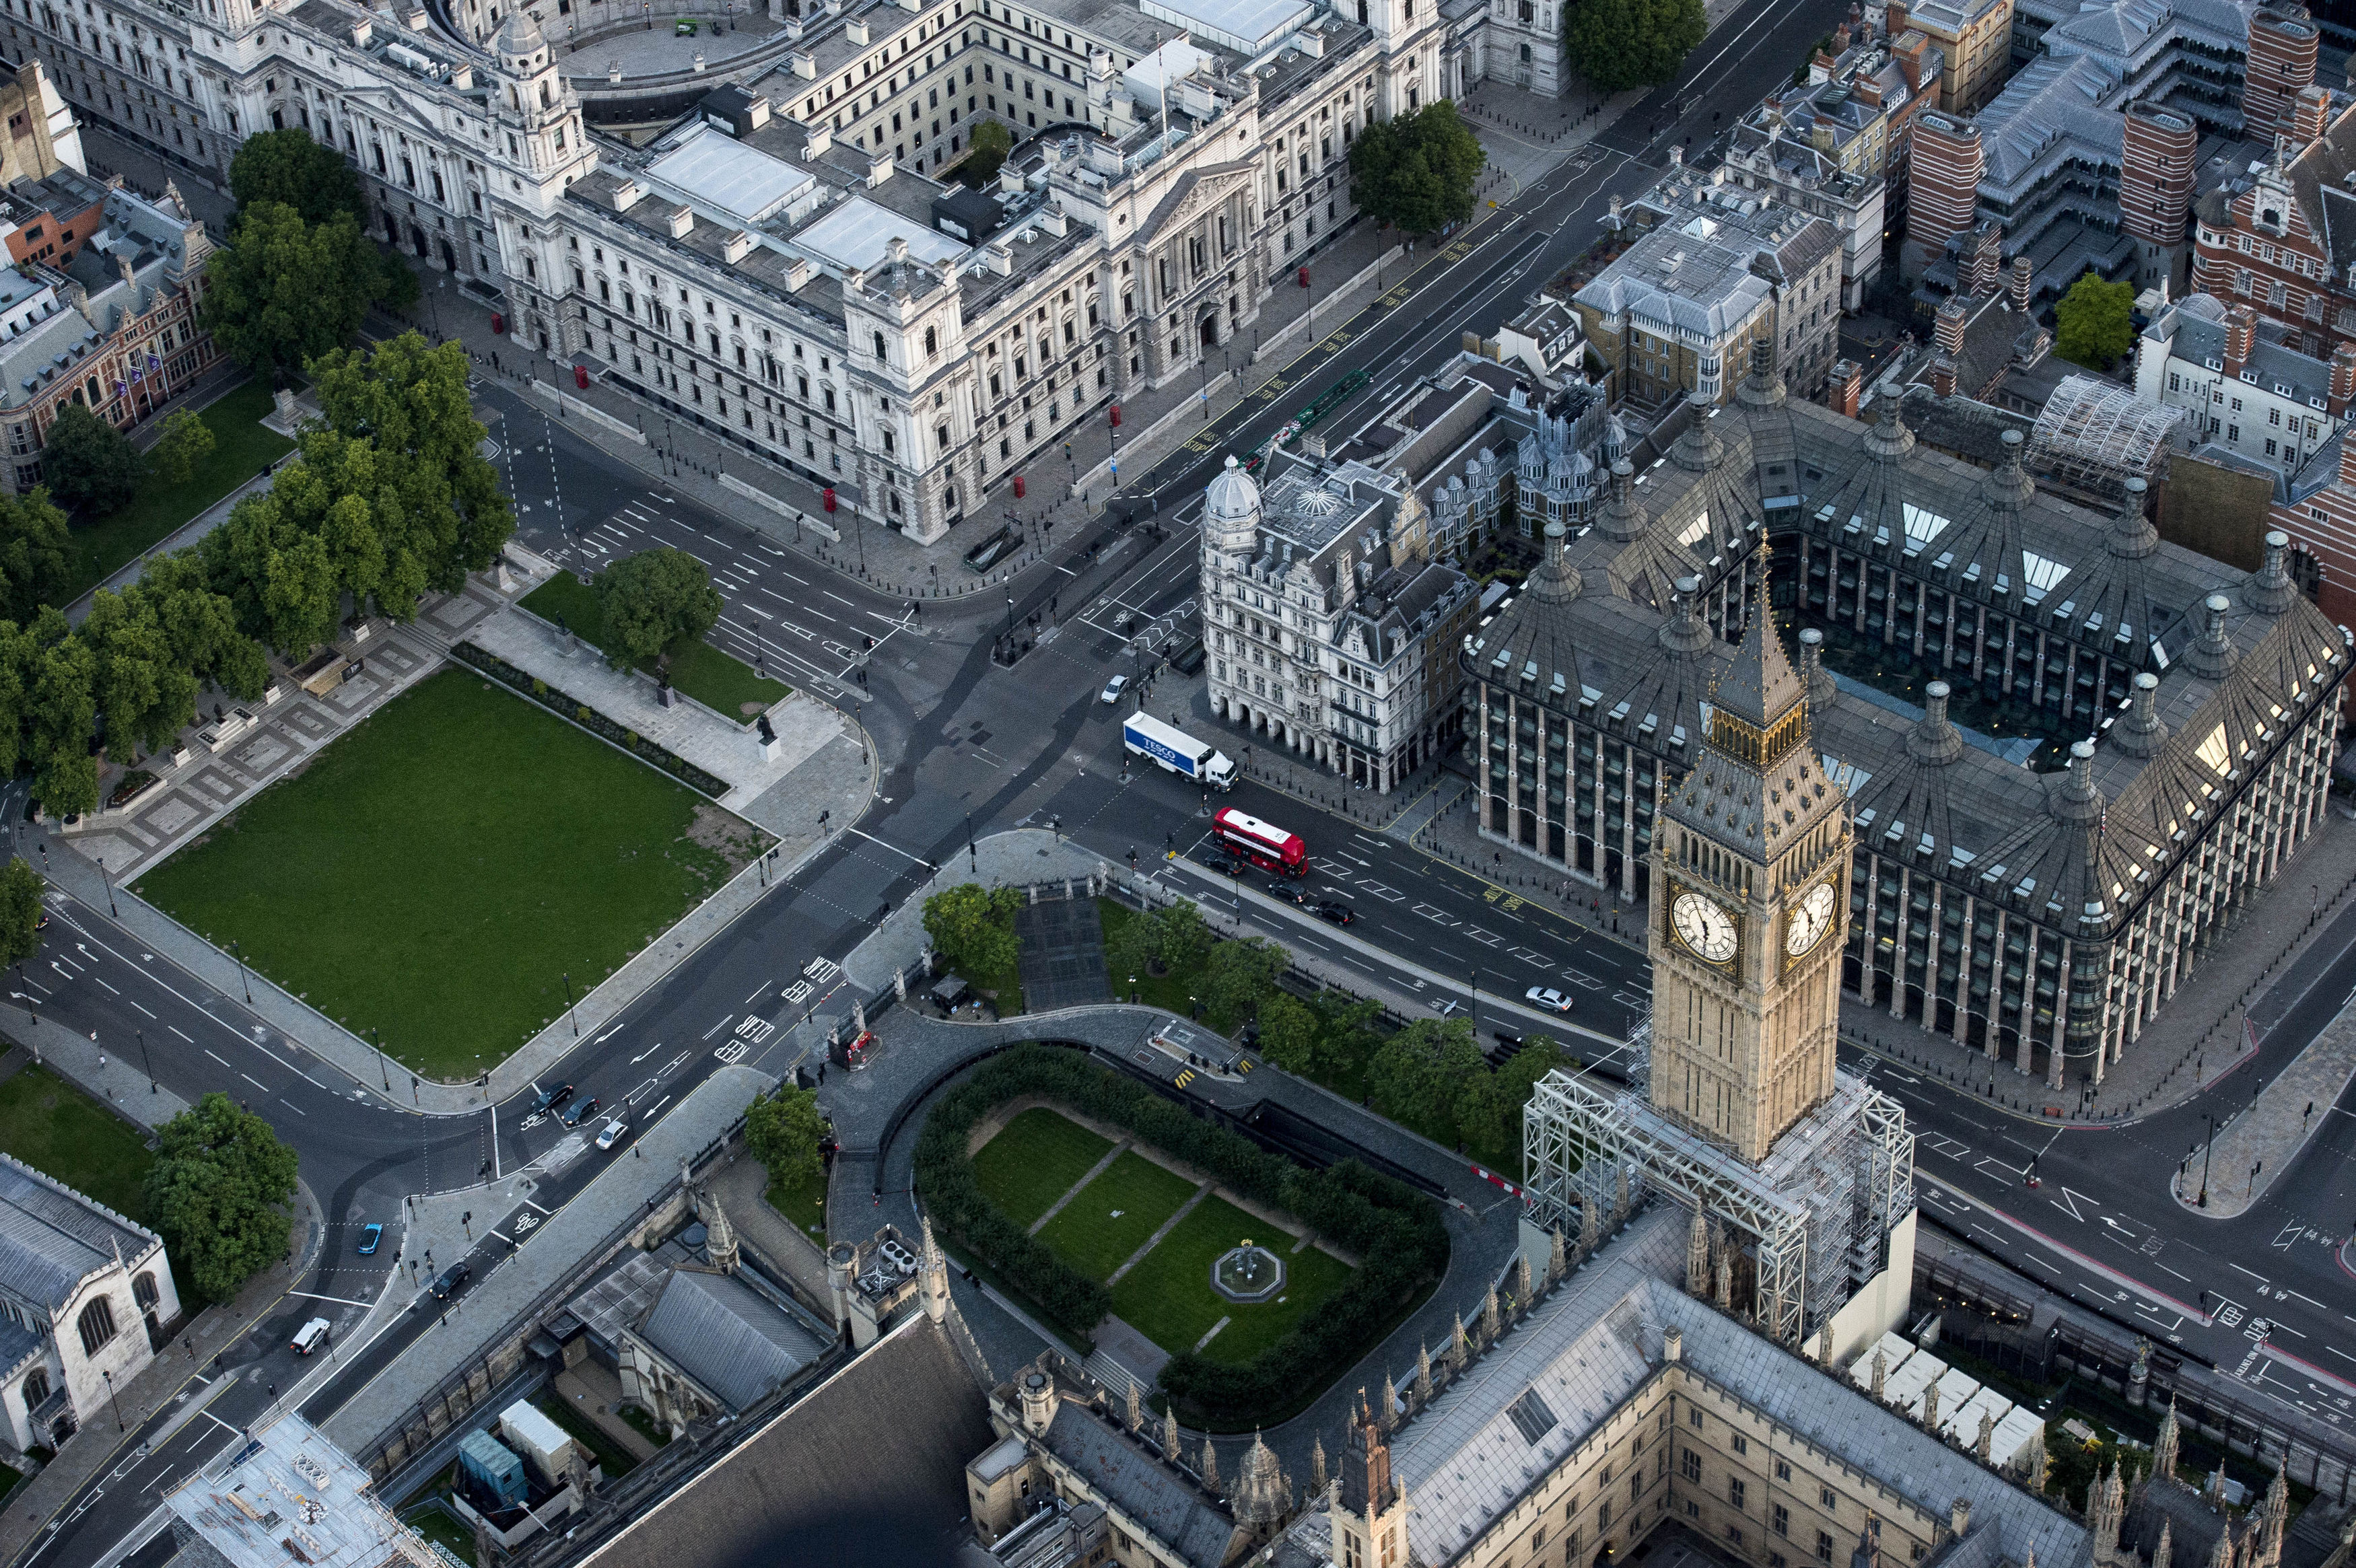 An aerial view of the Elizabeth Tower, which contains Big Ben